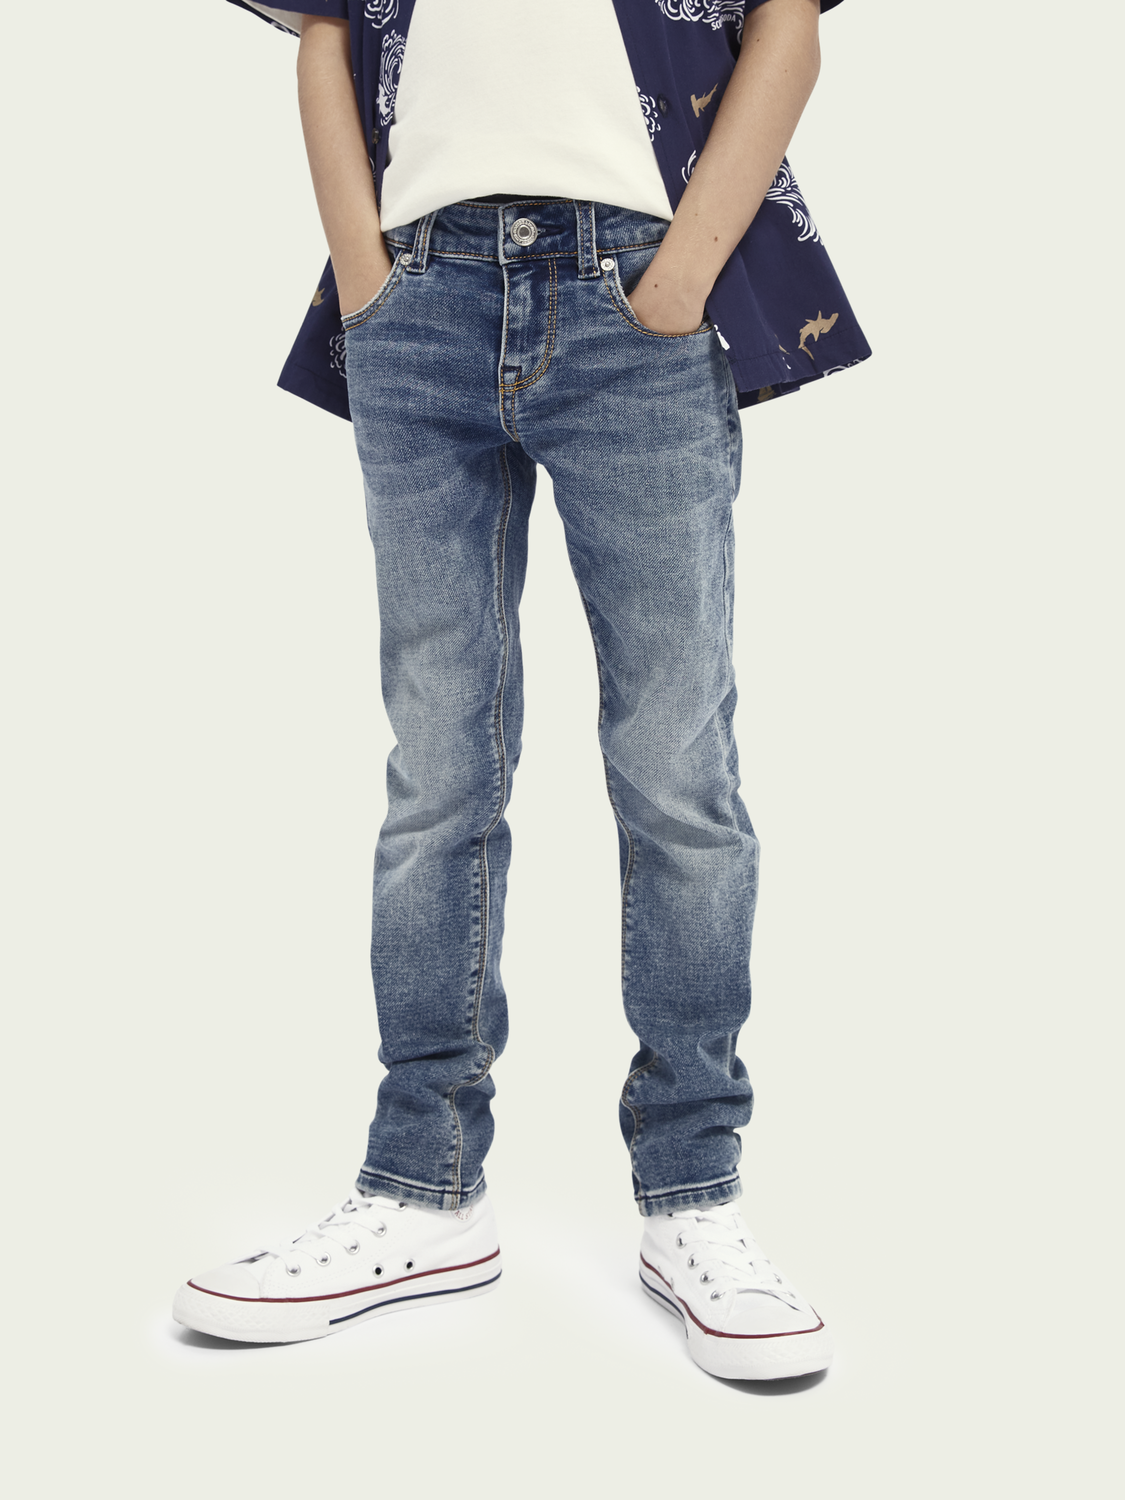 Bambini Tigger Jeans mid-rise super skinny – Weathered Blue Light